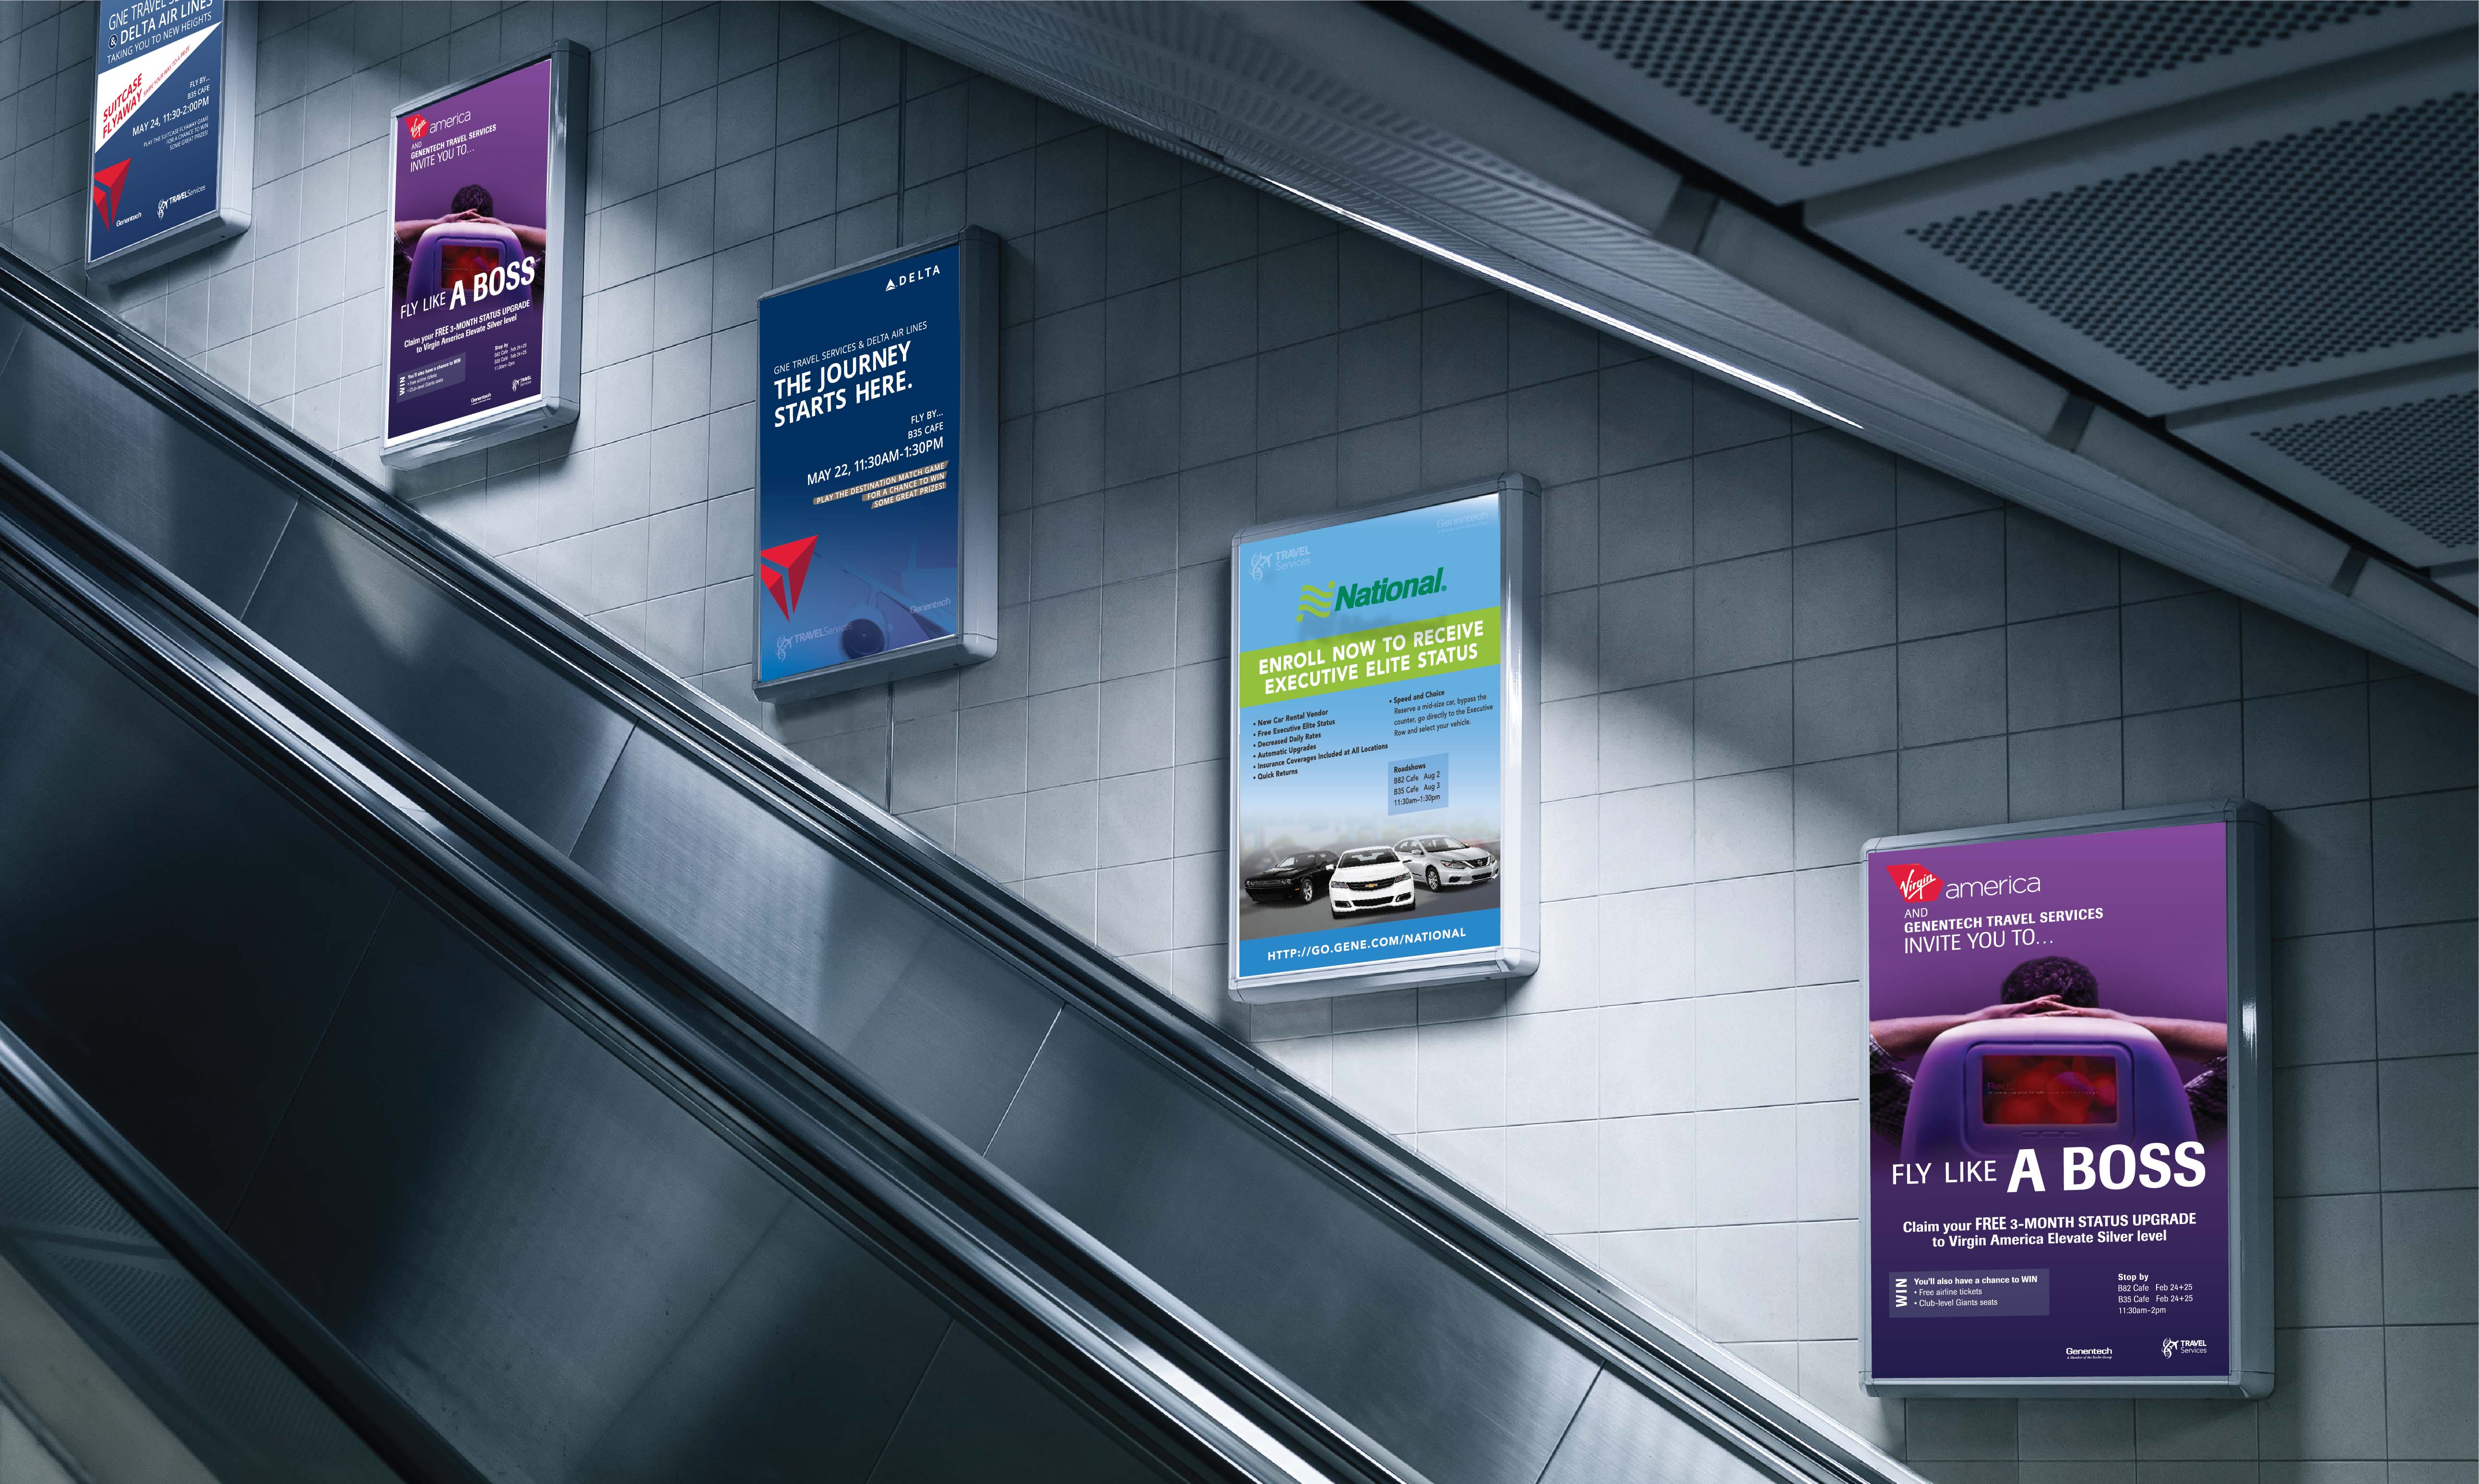 Poster examples in subway